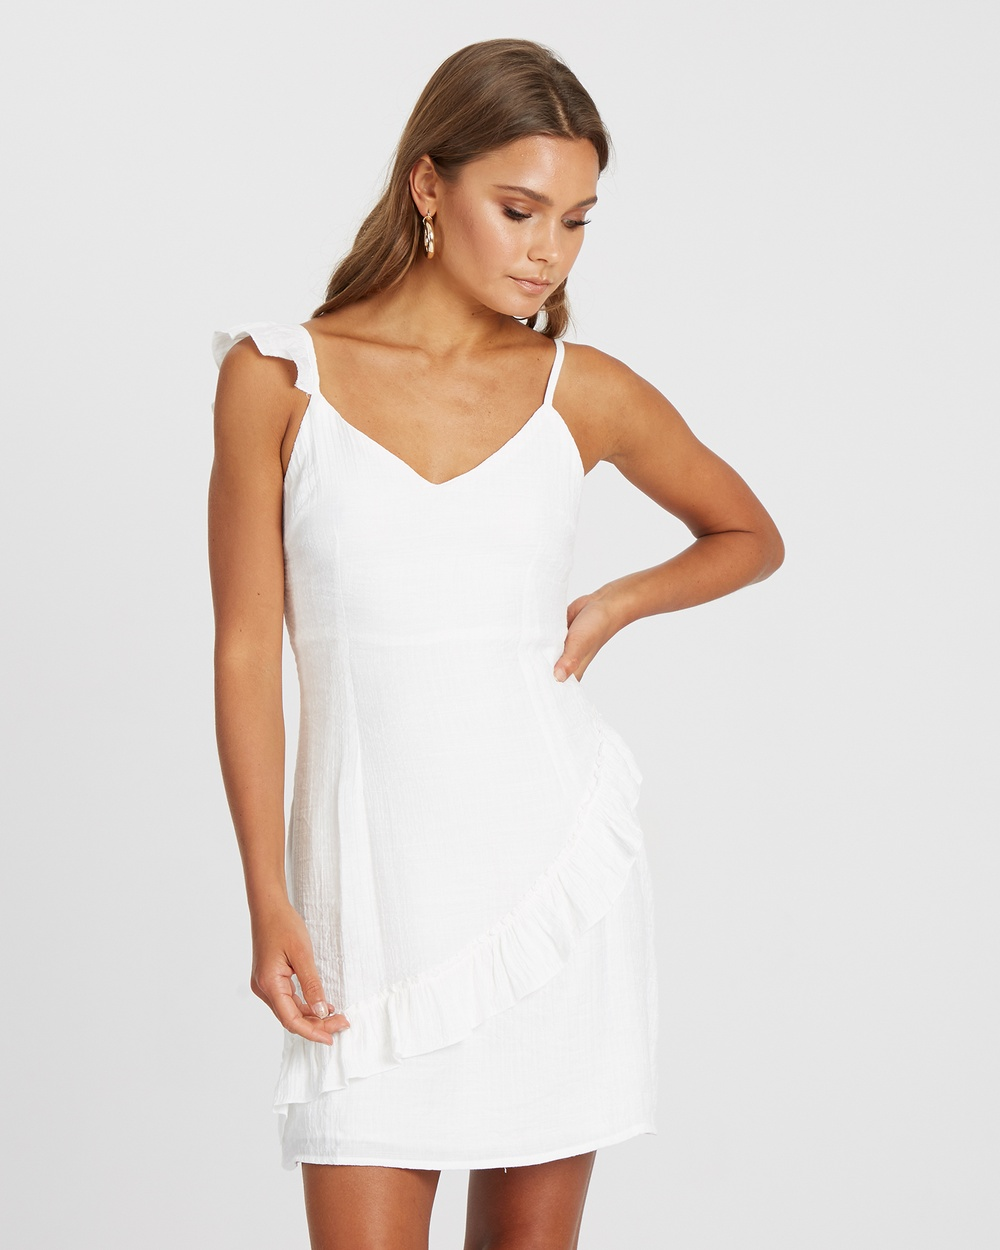 Calli Katey Frill Mini Dress Dresses White Katey Frill Mini Dress